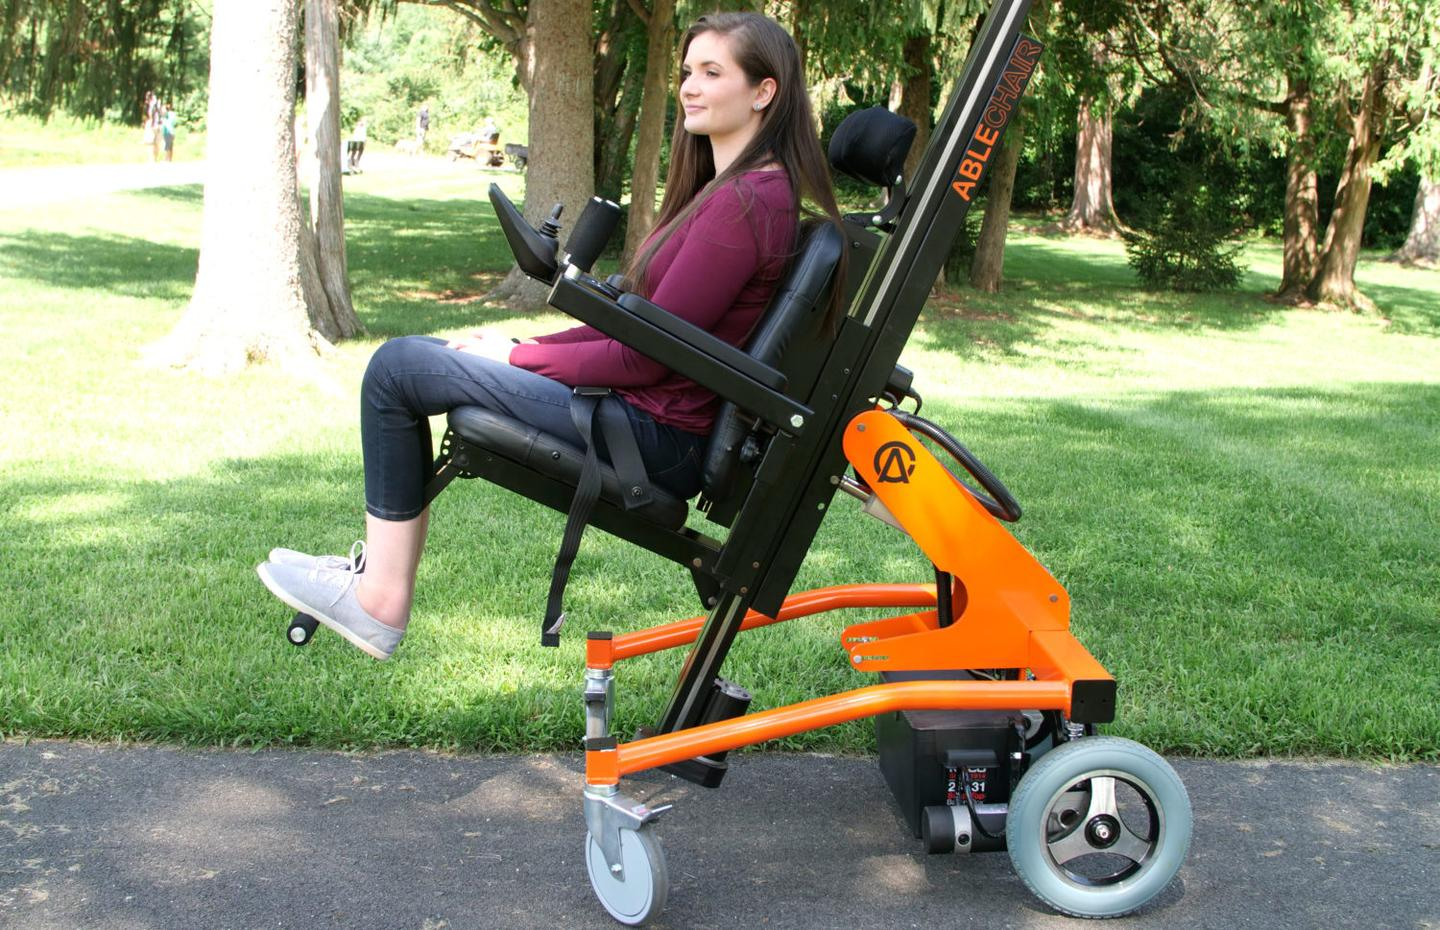 The AbleChair can power along at up to 4 mph